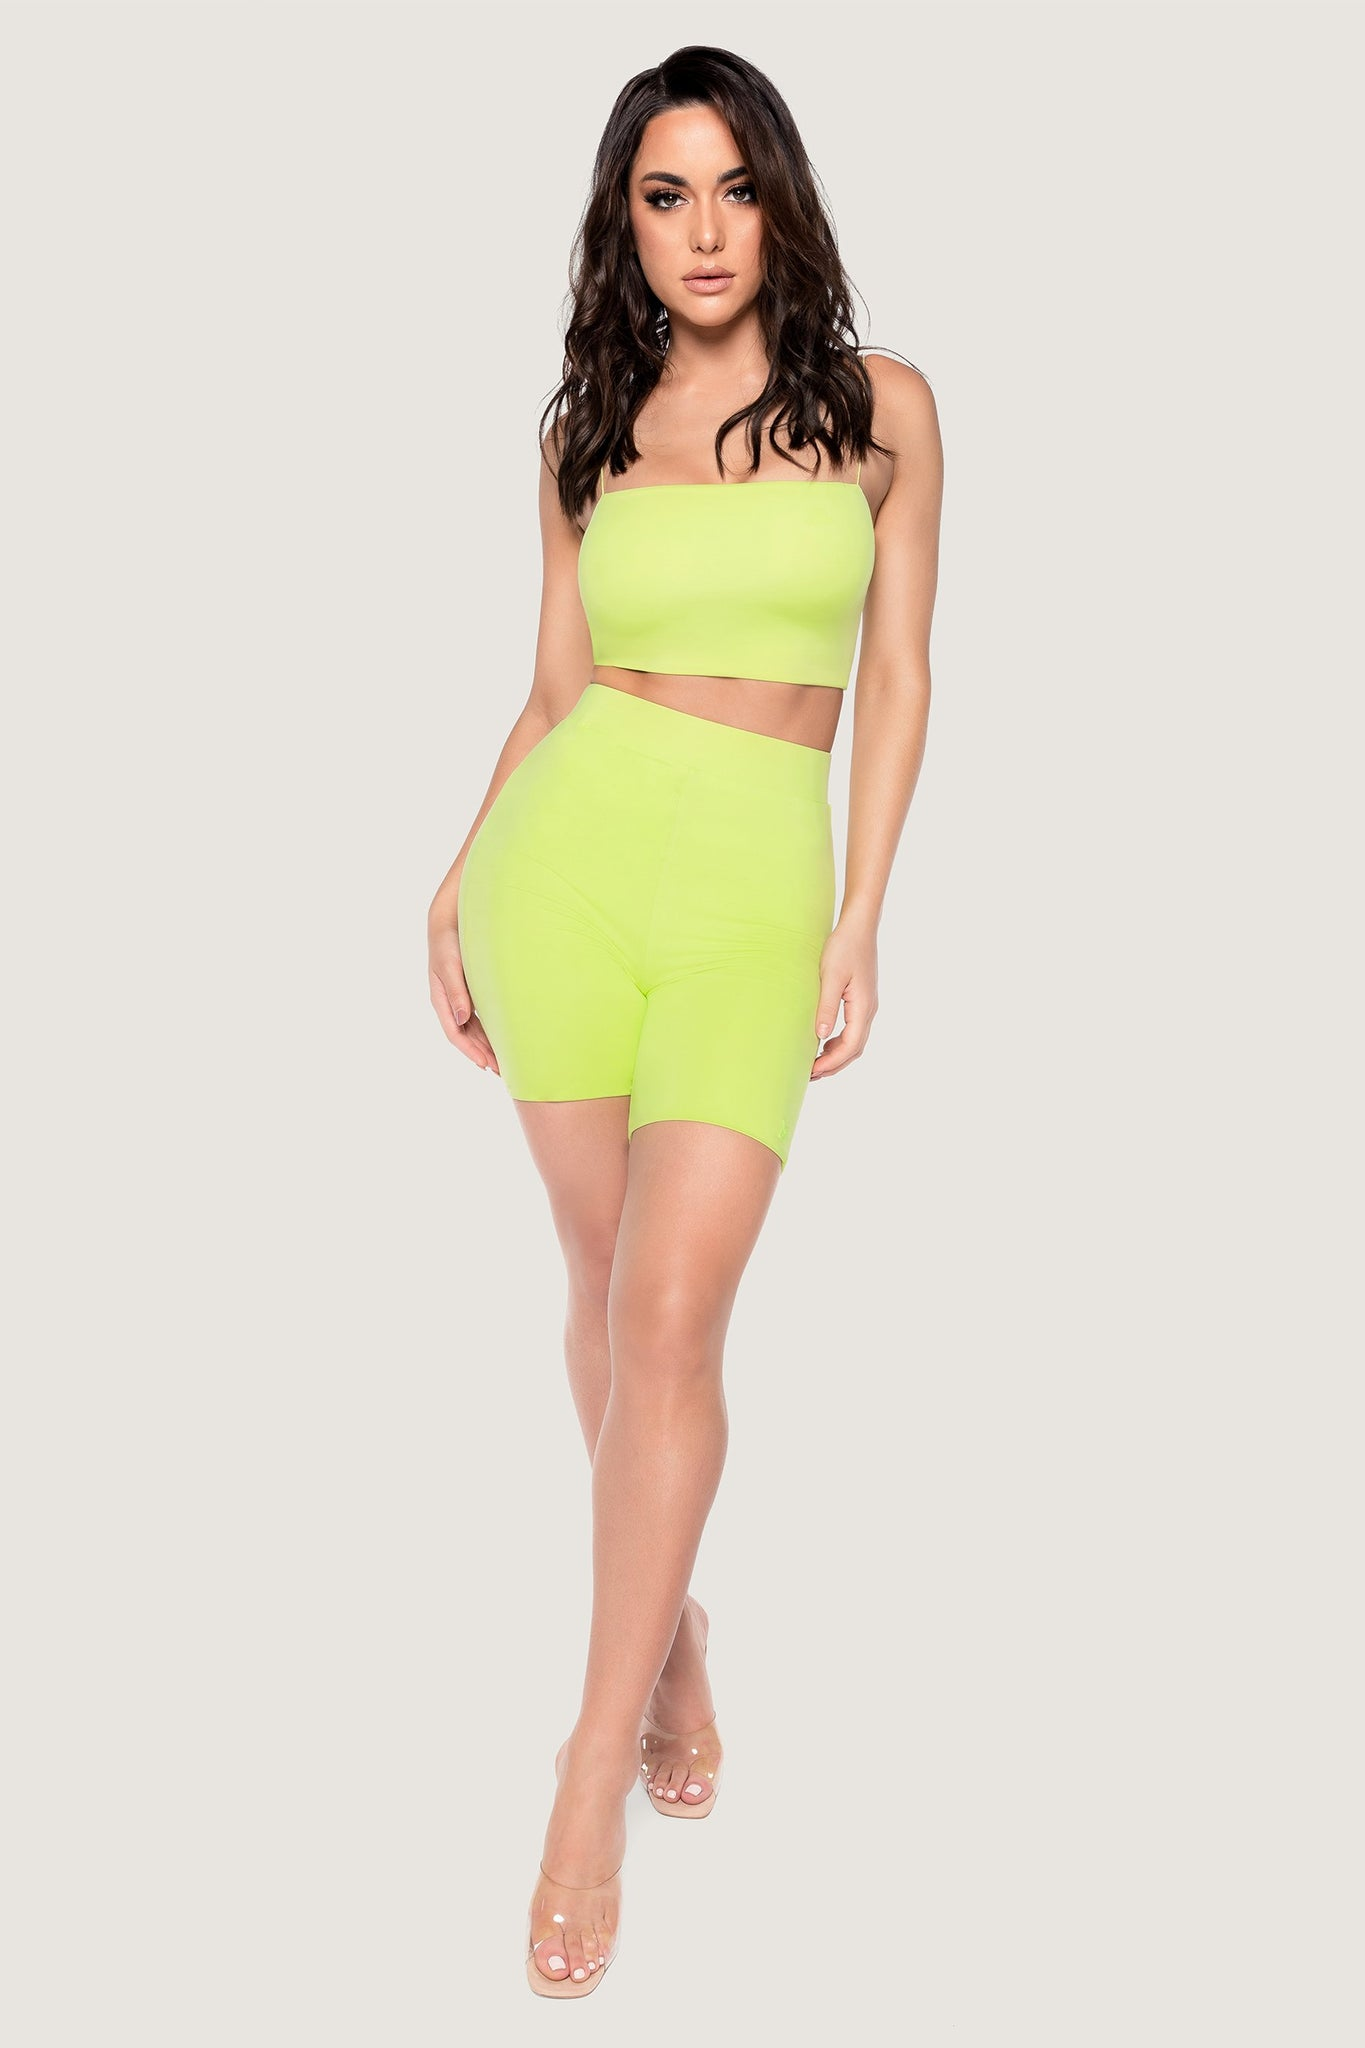 Cameryn High Waisted Bike Short - Lime Green - MESHKI